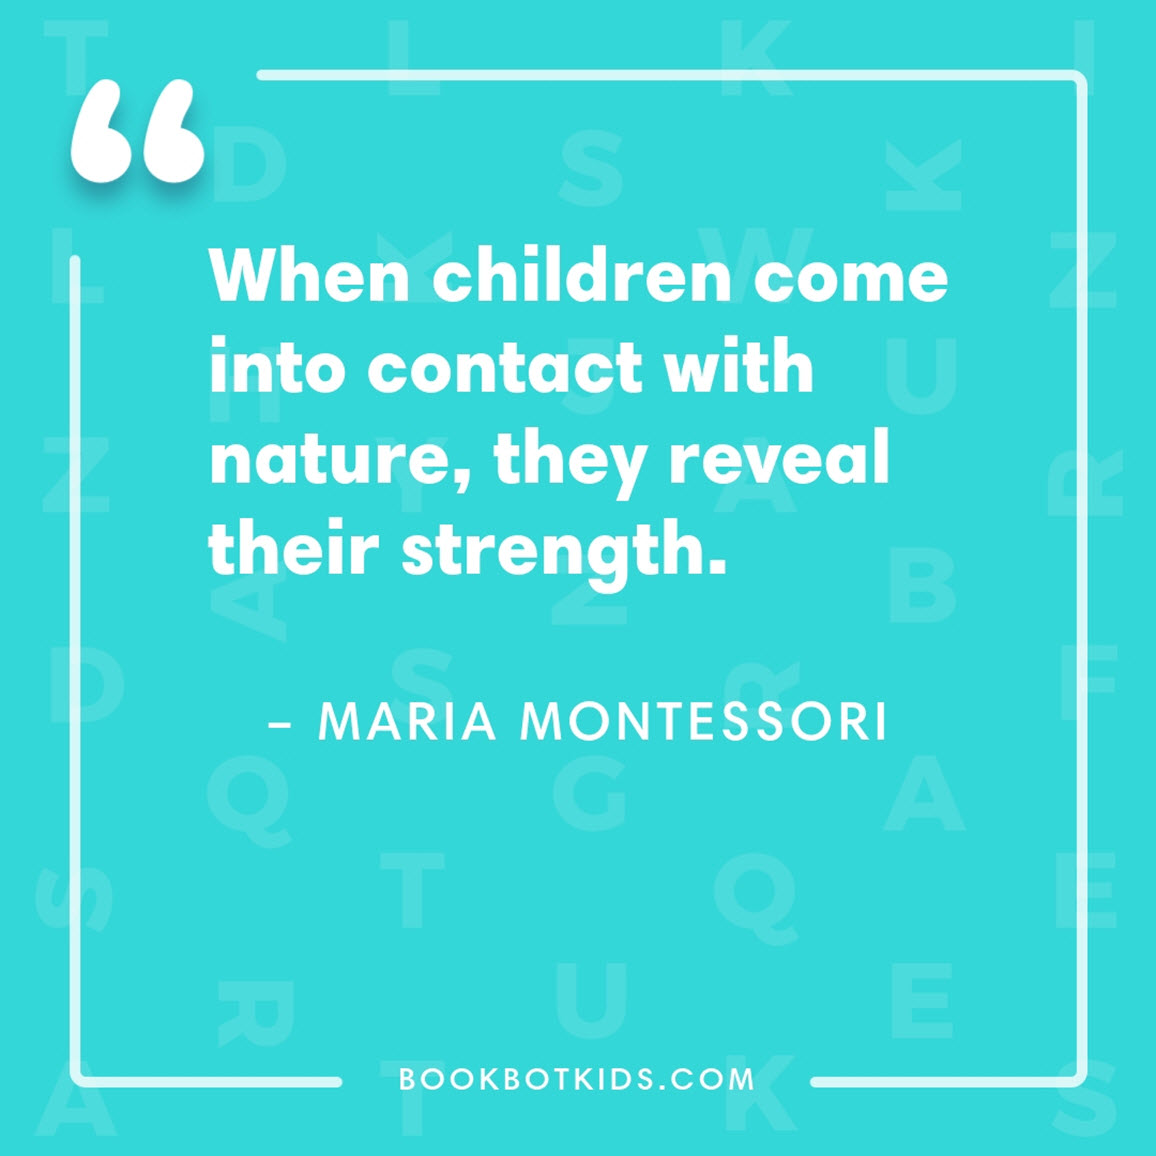 When children come into contact with nature, they reveal their strength. – Maria Montessori